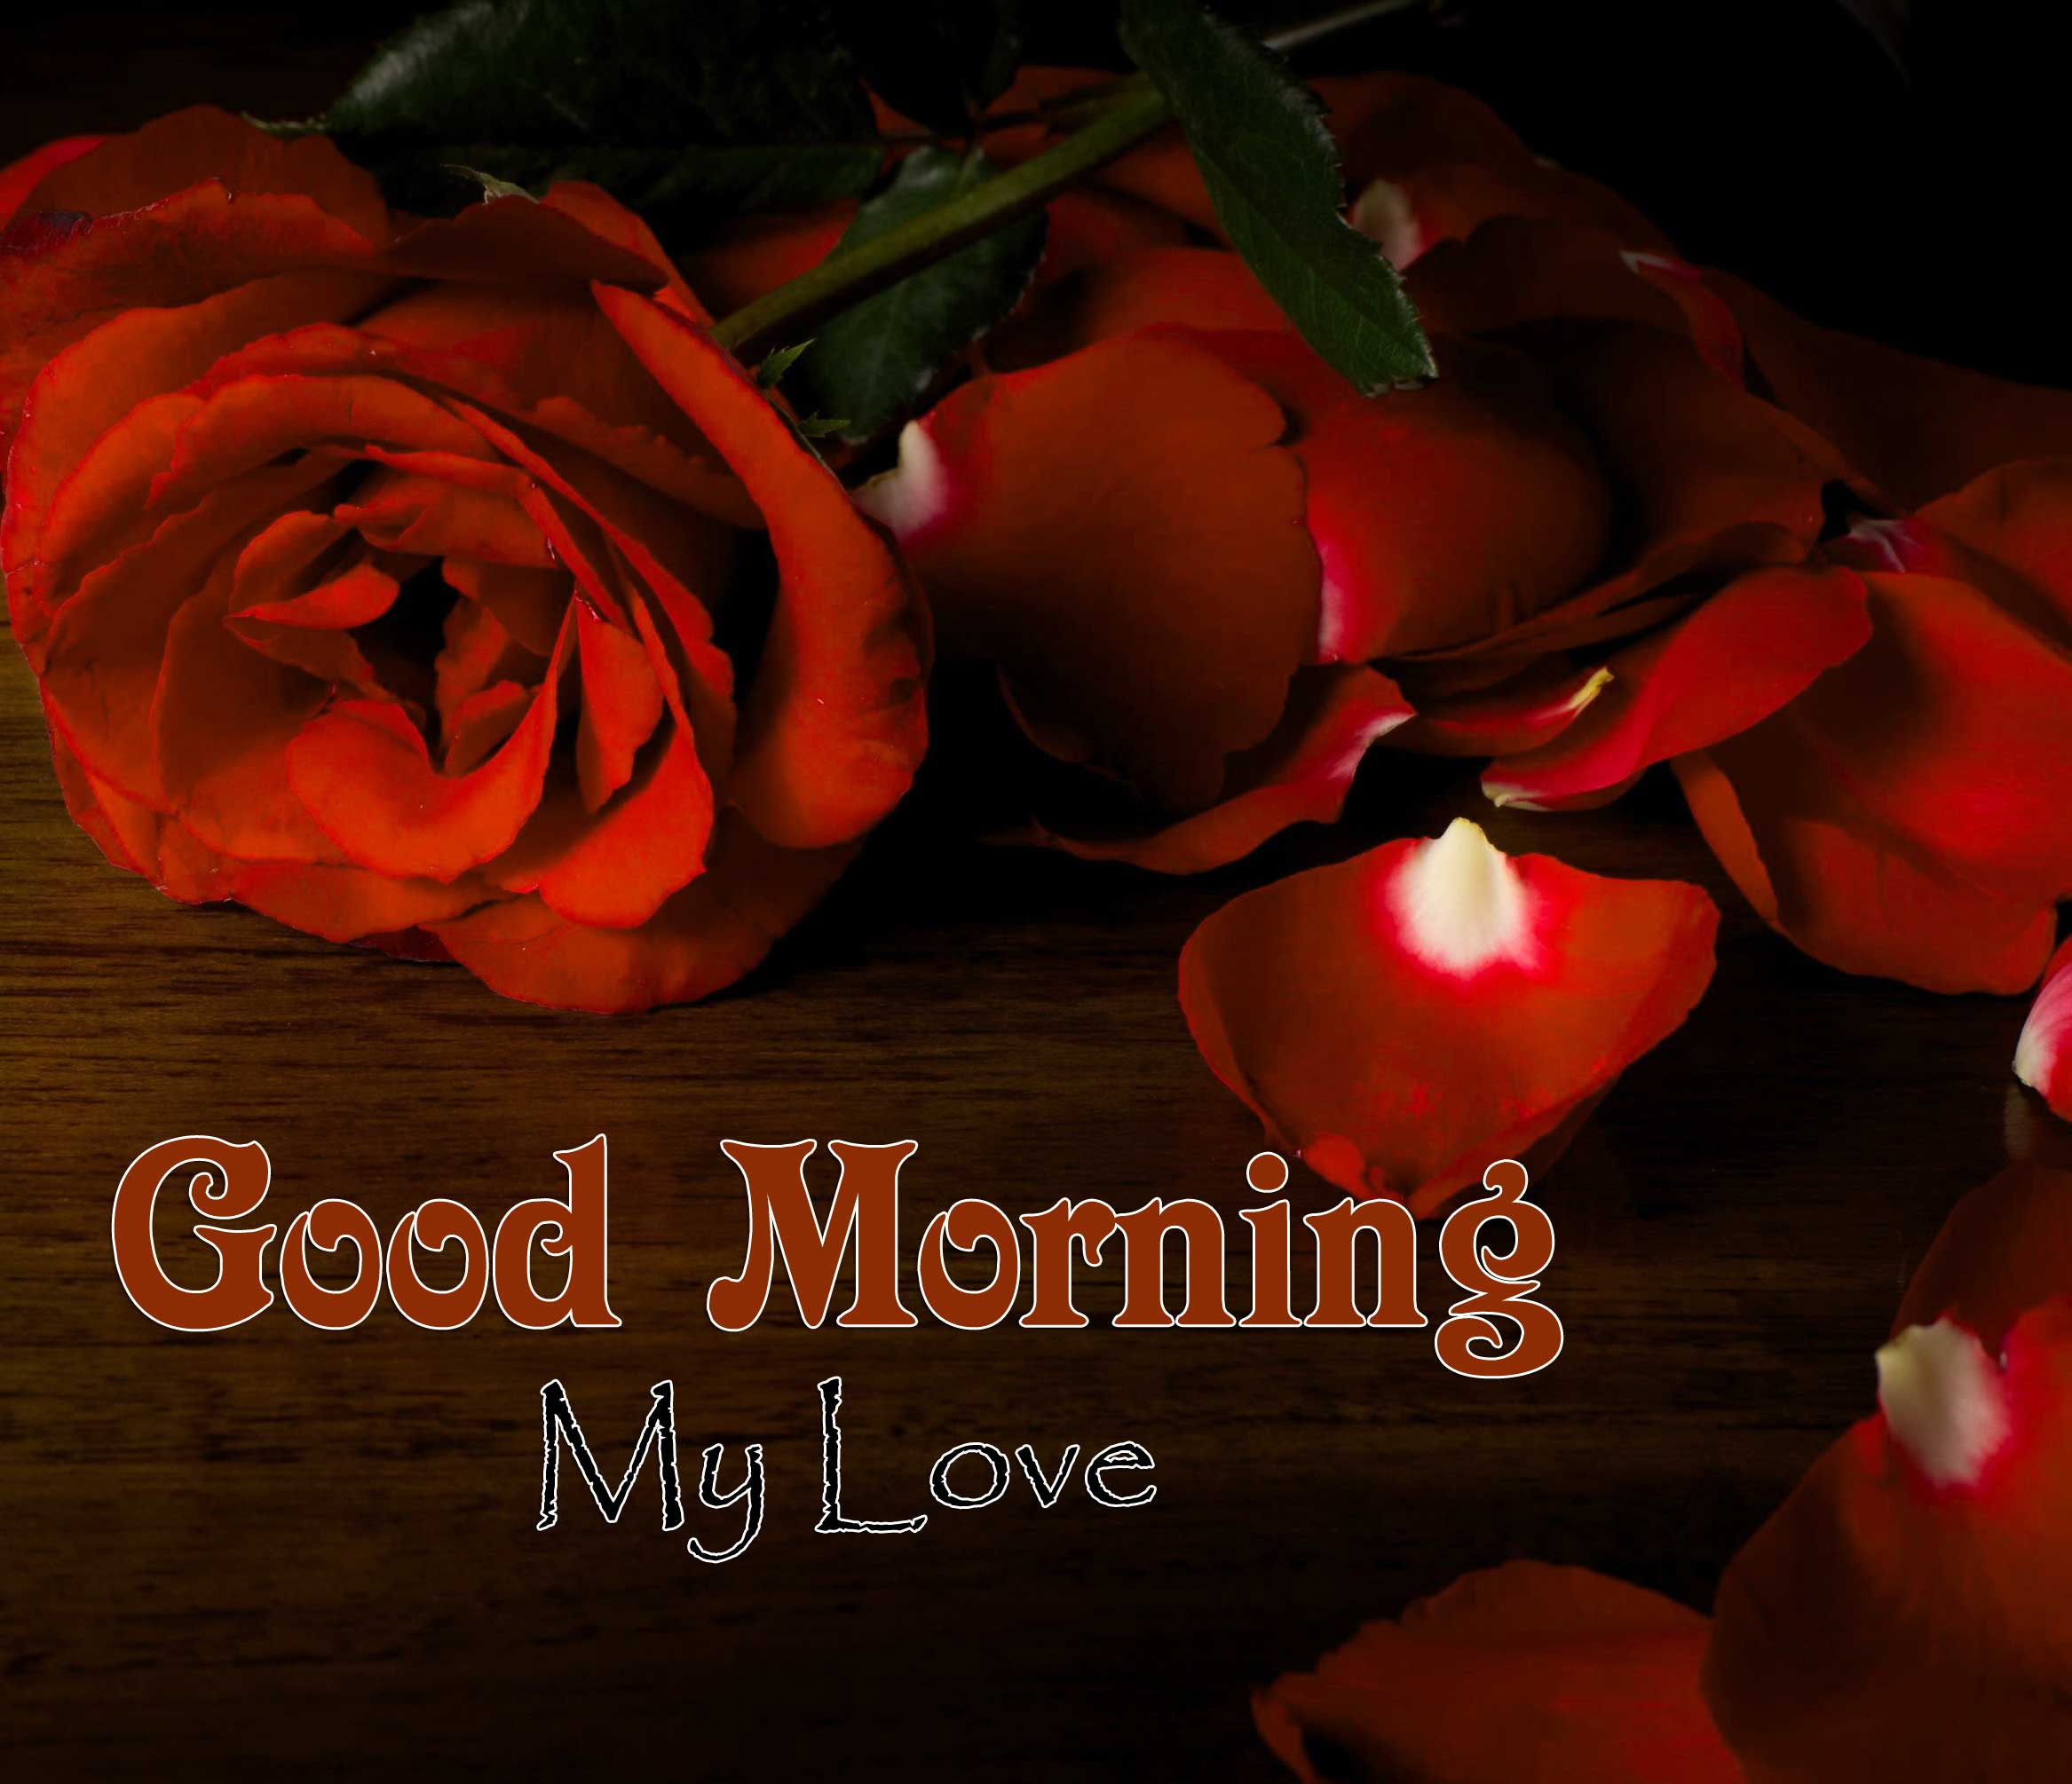 Cute Good Morning Images Hd Free